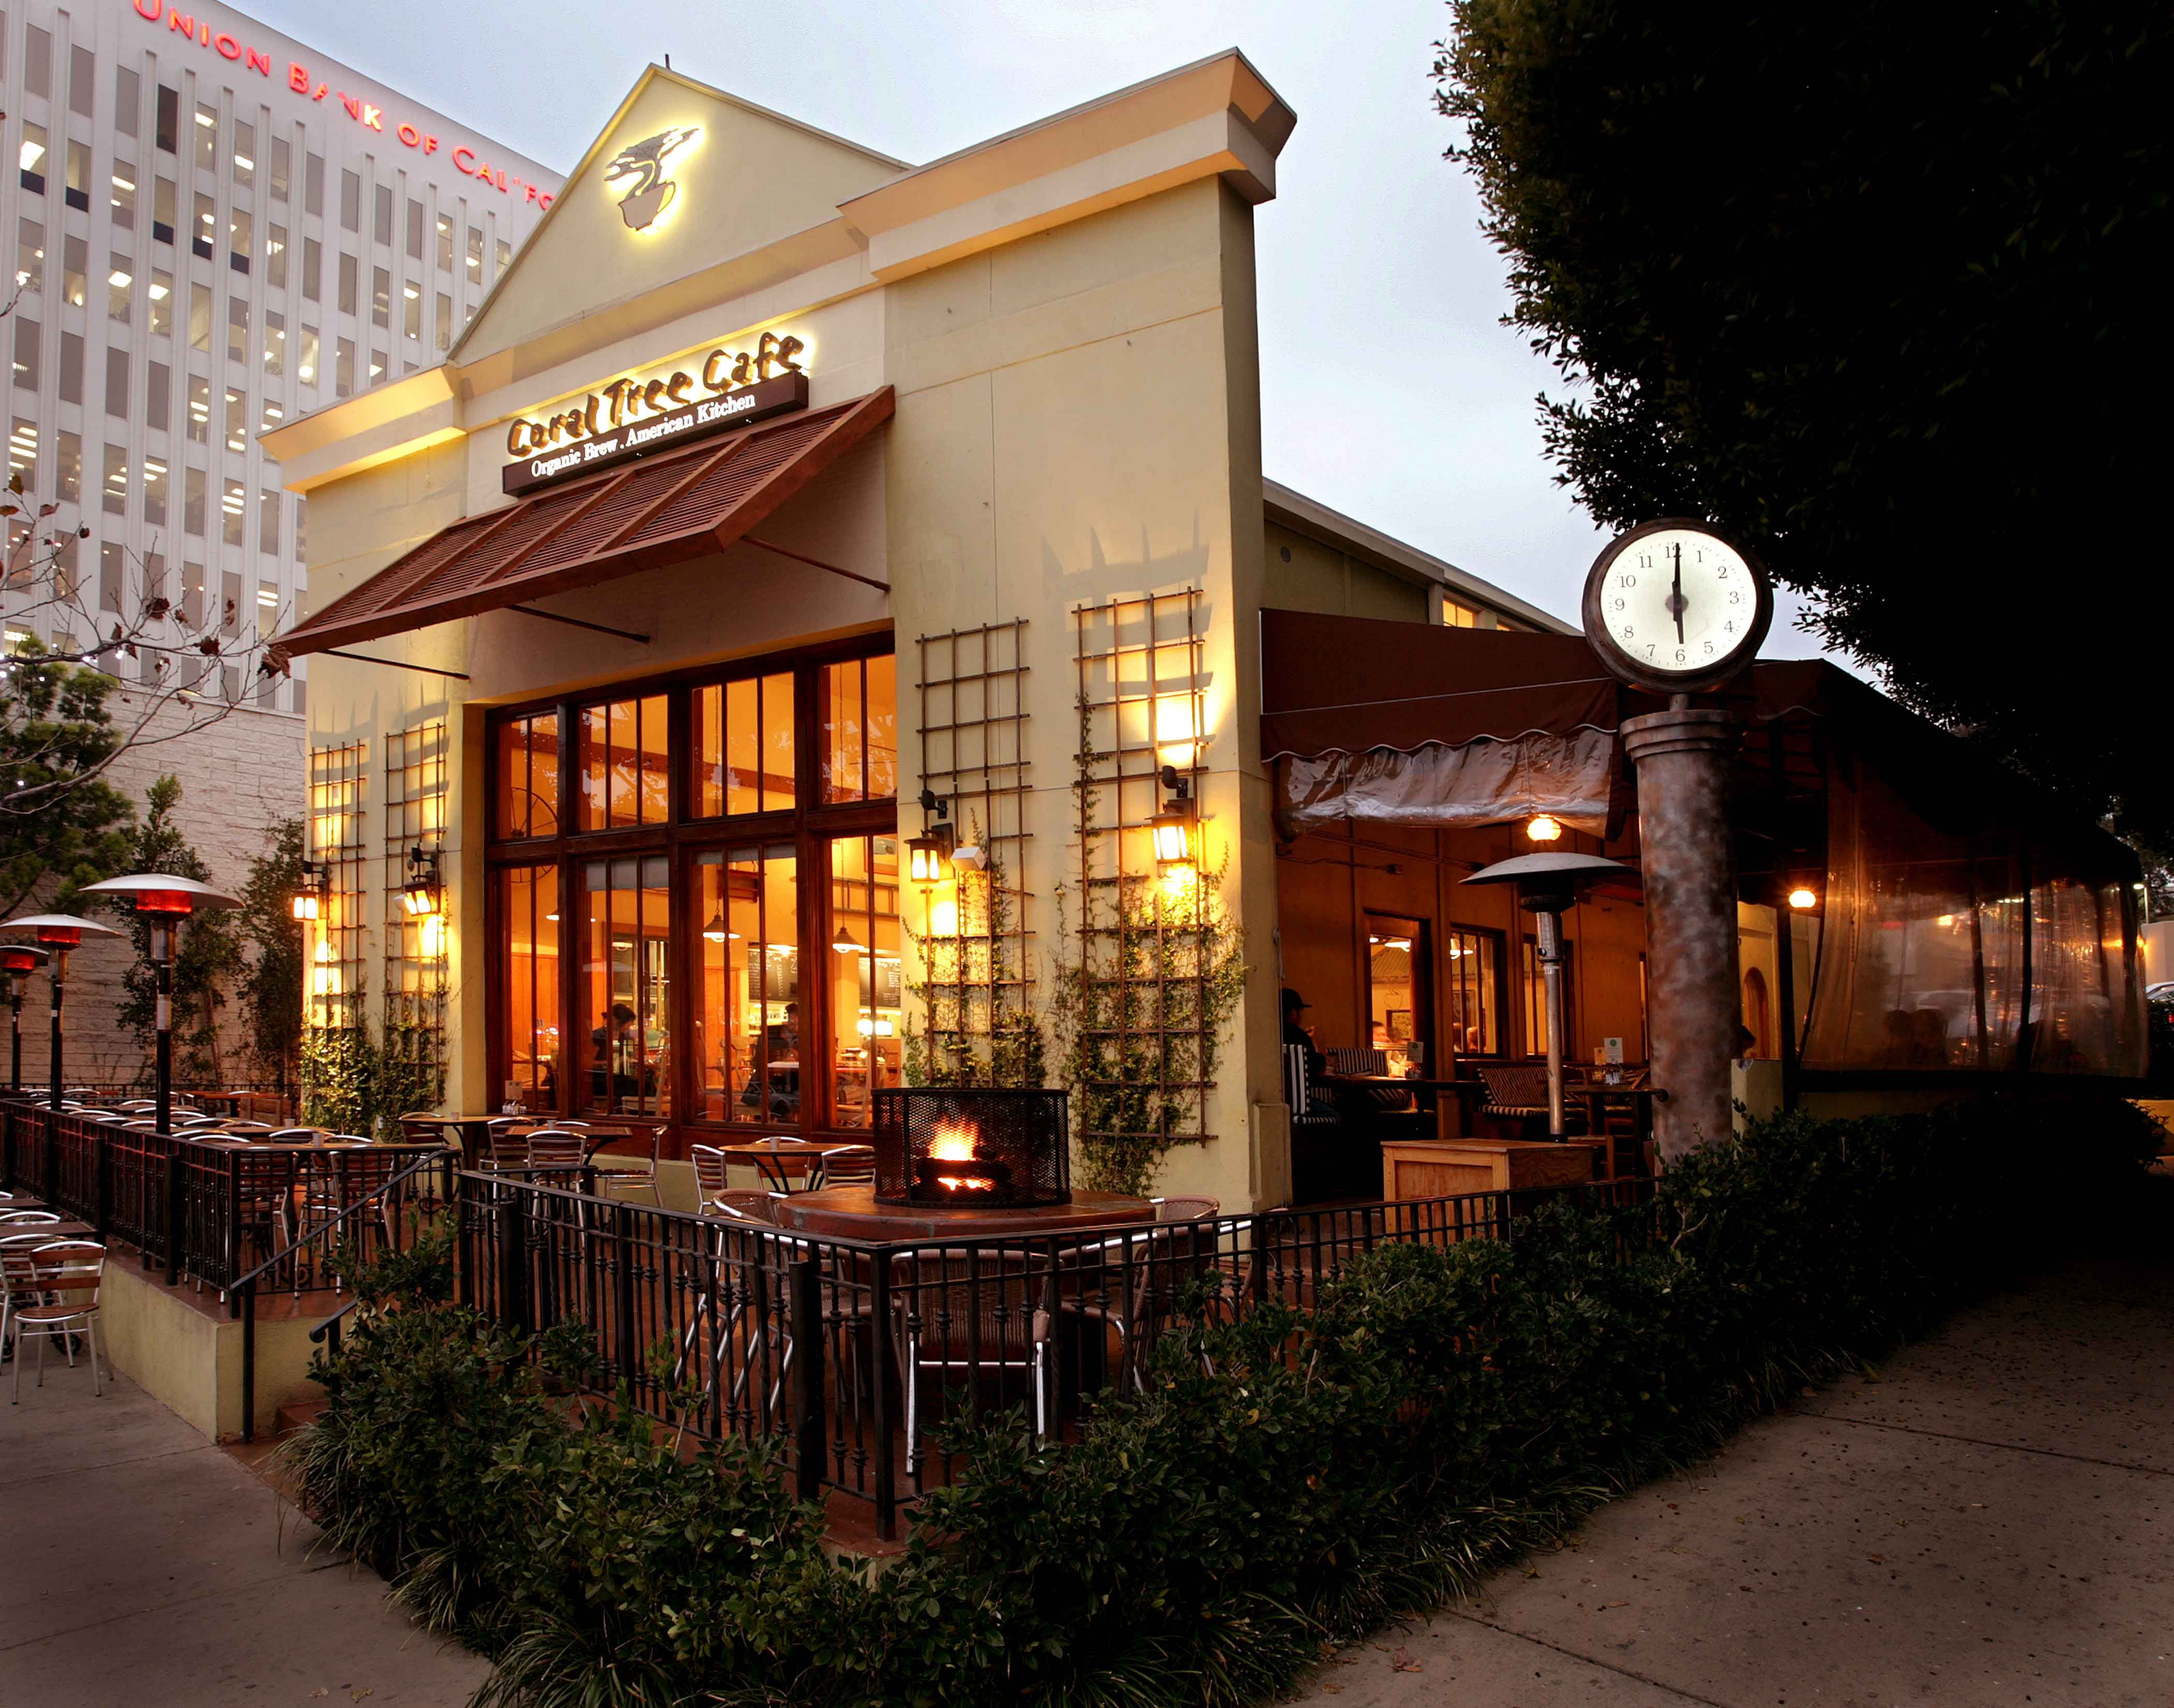 Coral Tree Cafe A Los Angeles Cafe And Restaurant Offering Californian Cuisine For Brunch Lunch And Dinner Catering Los Angeles Los Angeles Restaurants Cafe